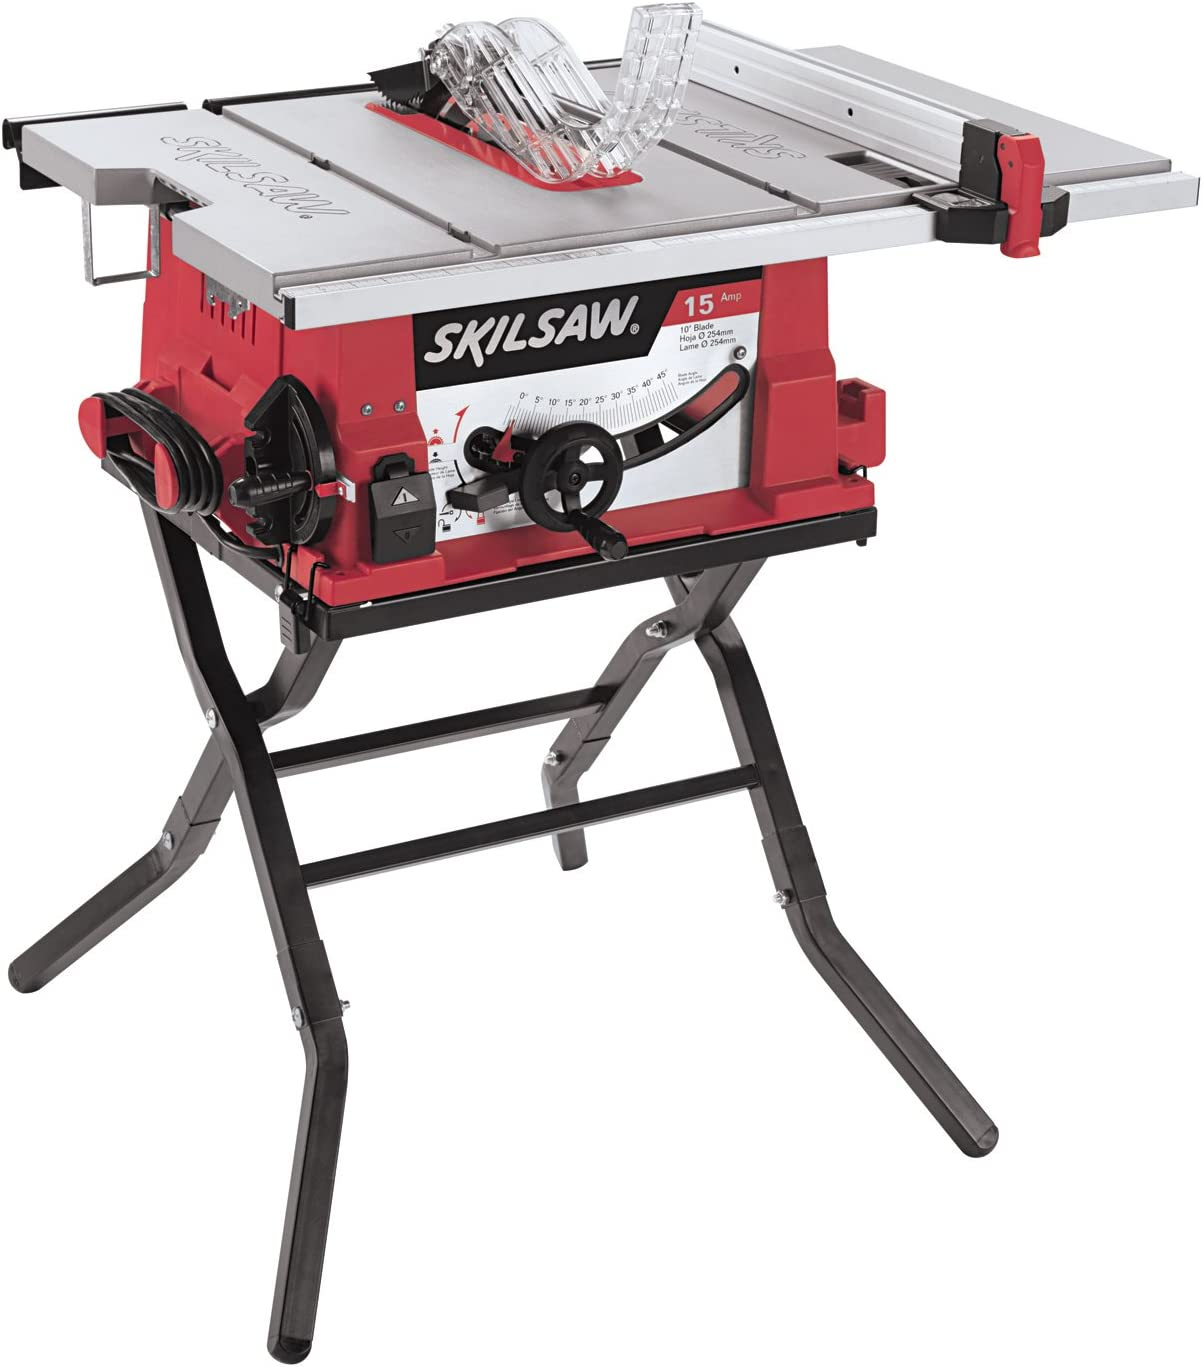 SKILSAW 3410-02 featured image 1